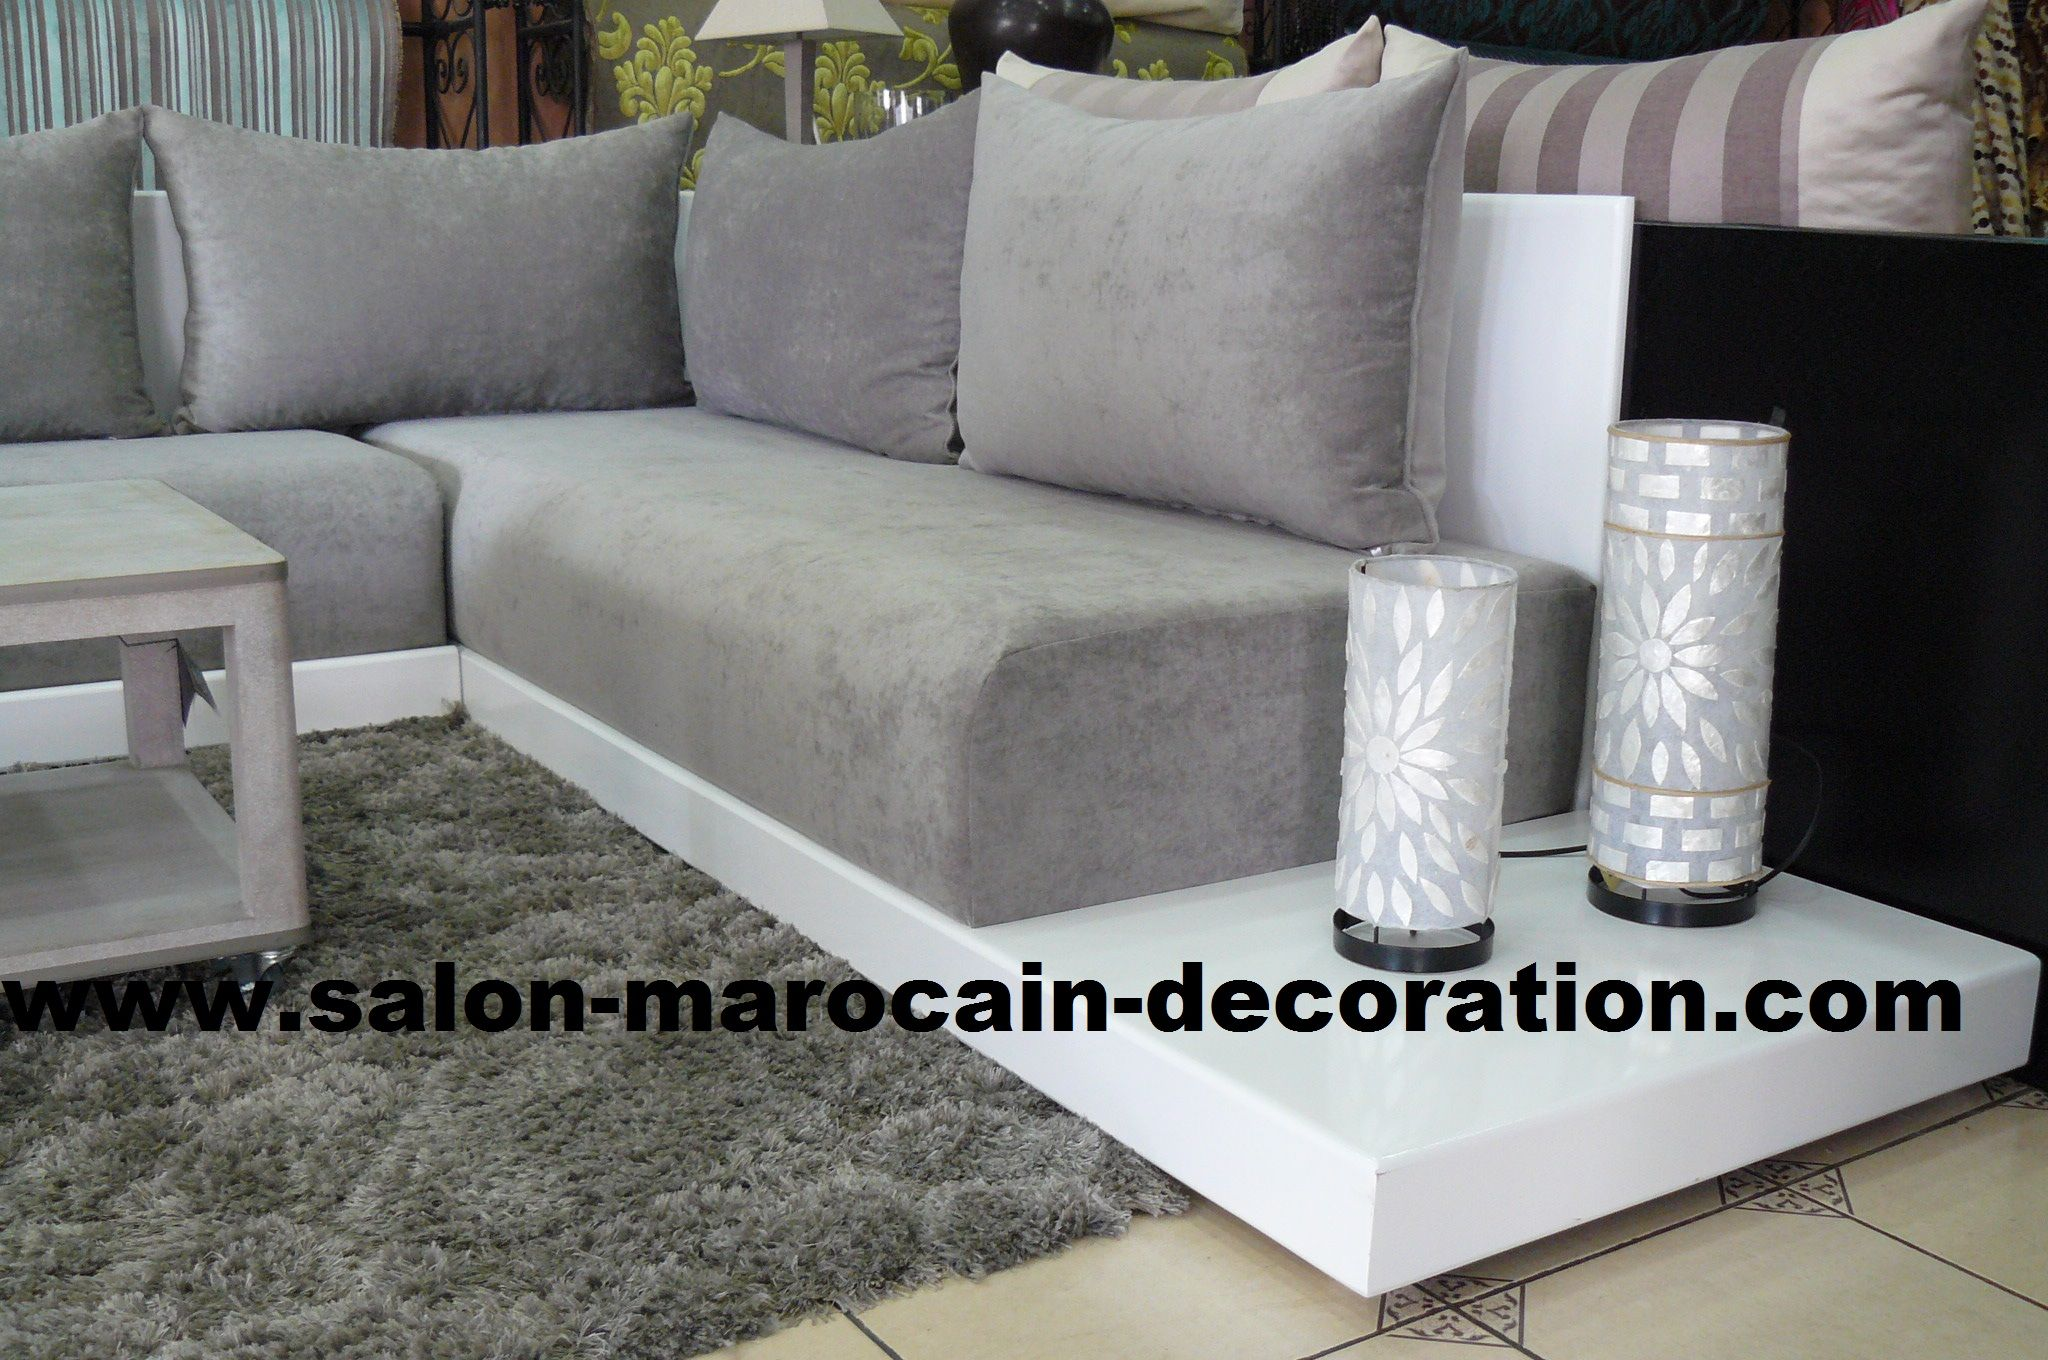 sedari pour salon marocain sur mesure moroccan style pinterest sedari salons marocains et. Black Bedroom Furniture Sets. Home Design Ideas